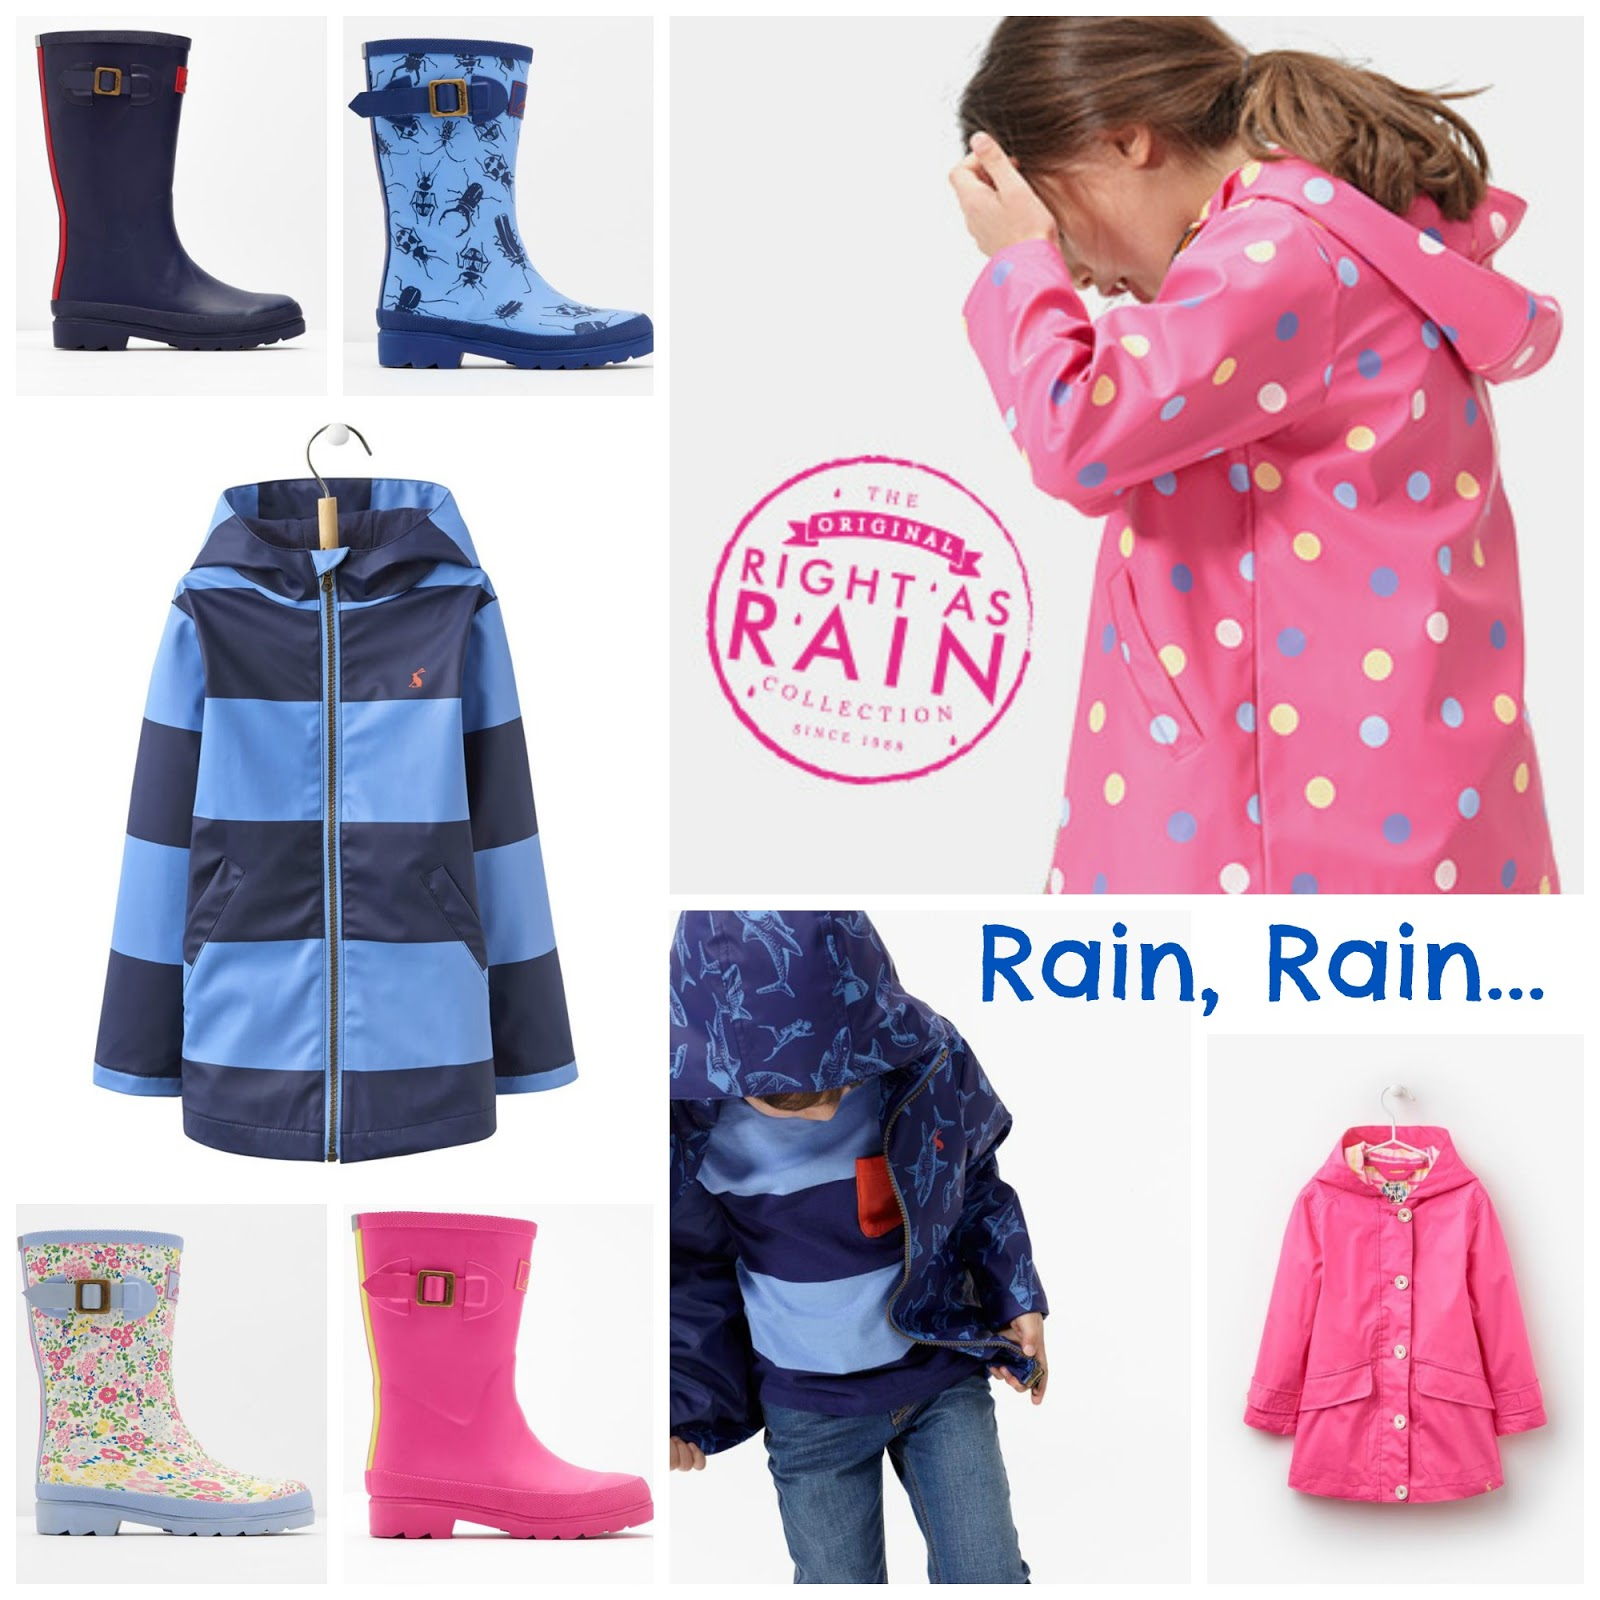 mamasVIB | V. I. BUYS: Welcome to #mamasmondays …. Joules raincoats, Kitchen Trotter & Olympus PEN